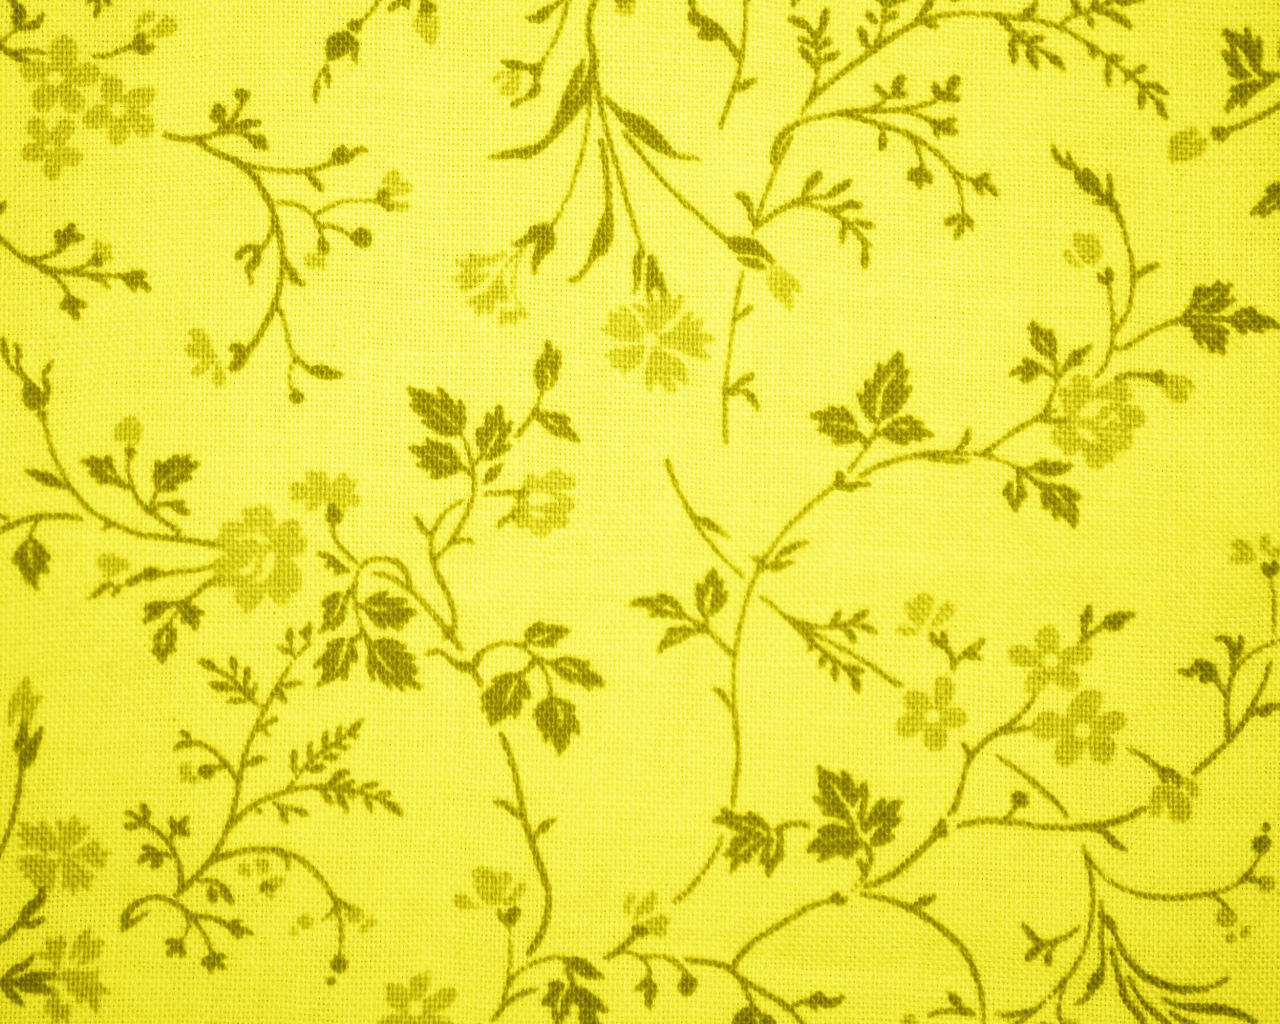 Free Download Yellow Floral Print Fabric Texture High Resolution